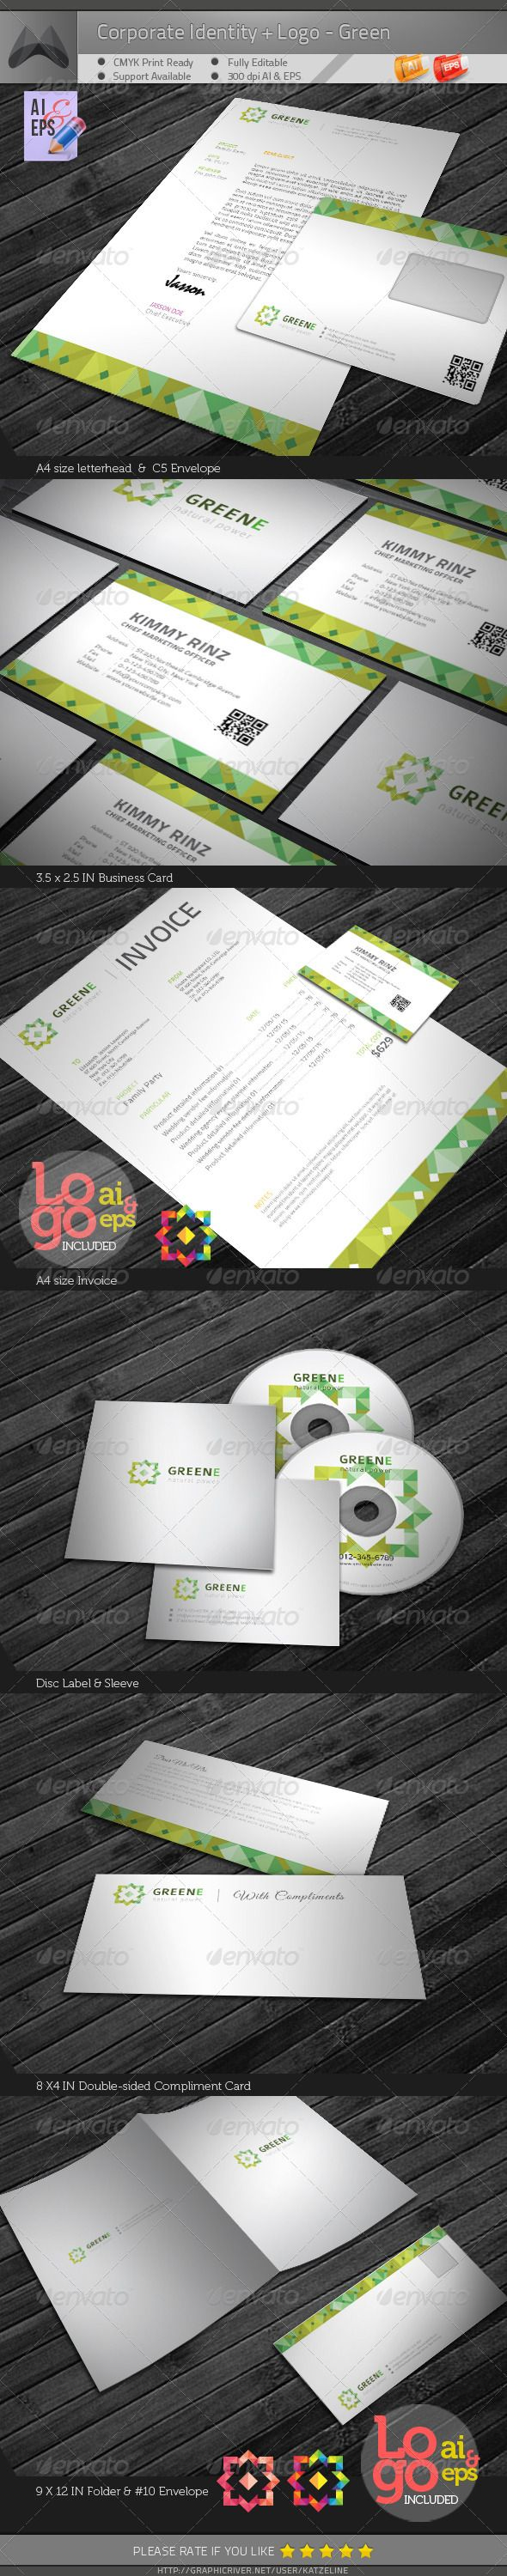 Beautiful 10 Best Resume Tips Small 10 Half Hexagon Template Rectangular 1099 Excel Template 12 Month Timeline Template Youthful 1st Place Certificate Template Dark2 Round Label Template 25  Best Ideas About C5 Envelope On Pinterest | Mini Envelope ..